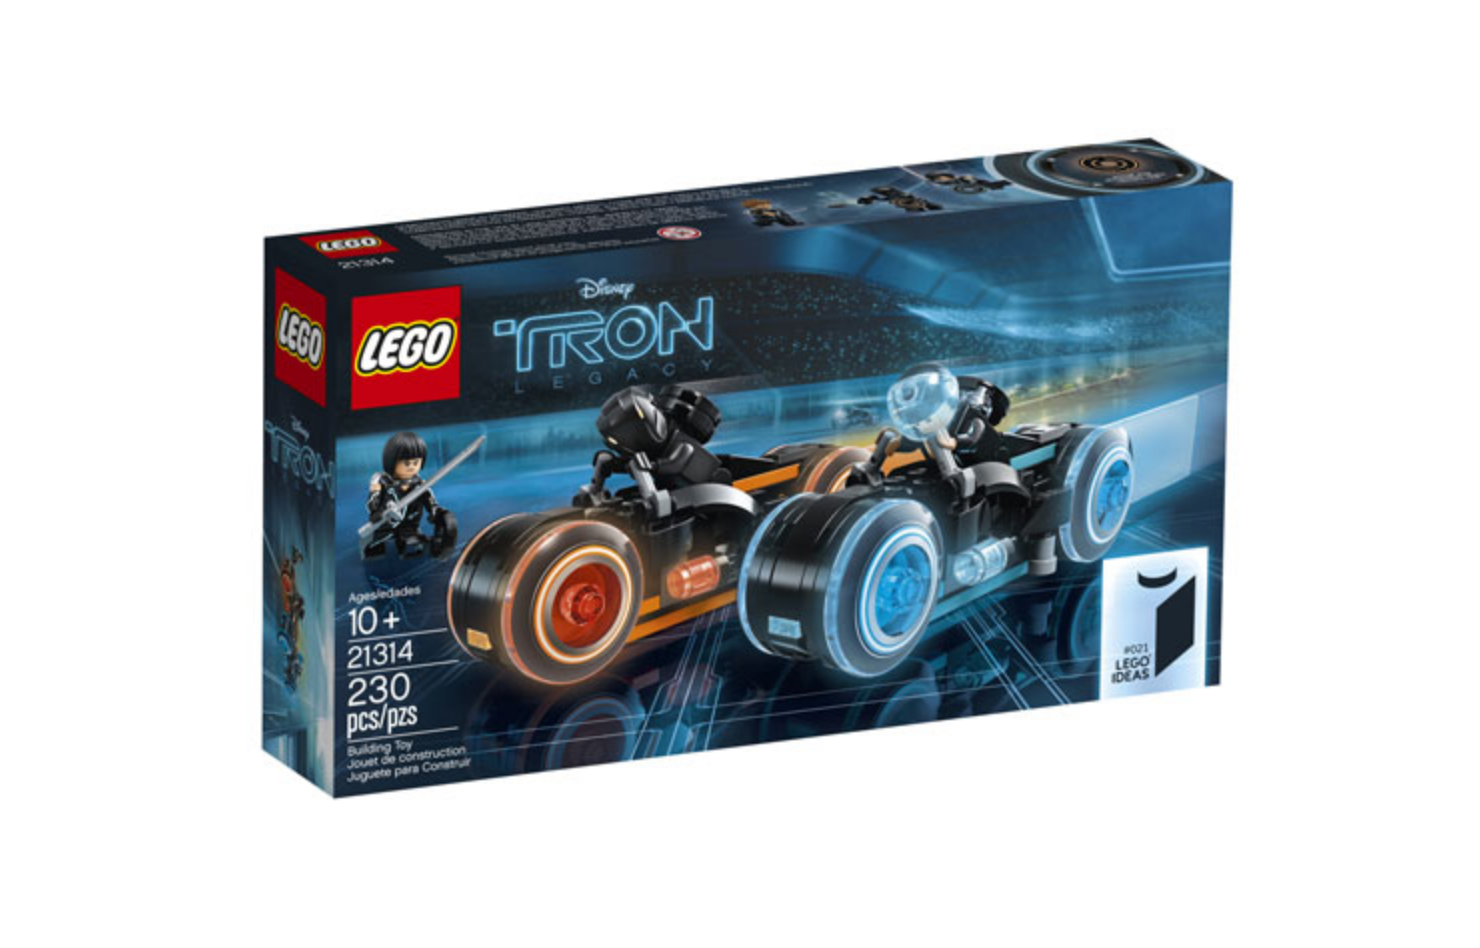 Hard to find Lego Tron